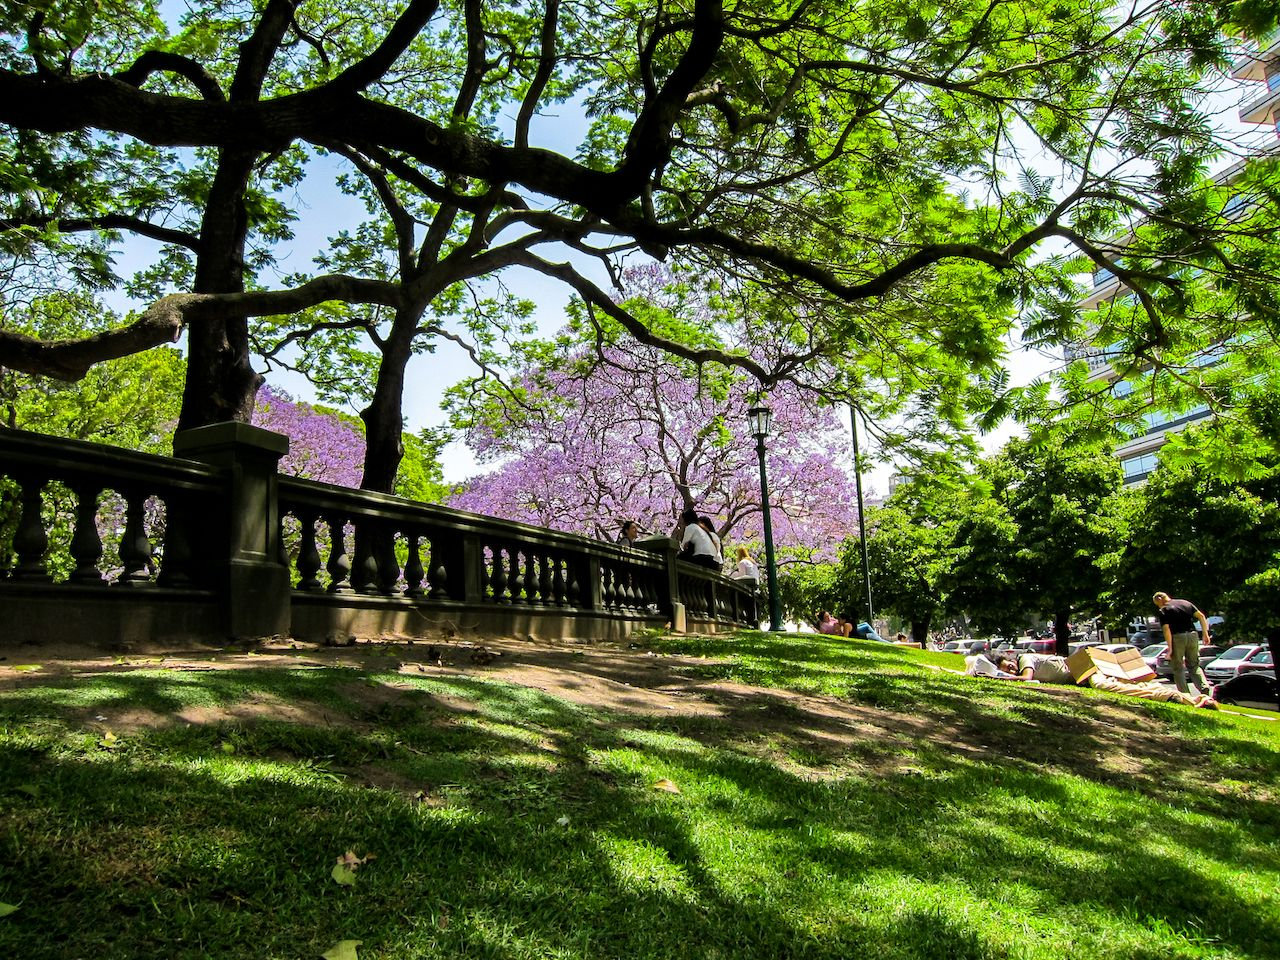 Jacaranda tree in full bloom on Plaza San Martin in Buenos Aires, Argentina